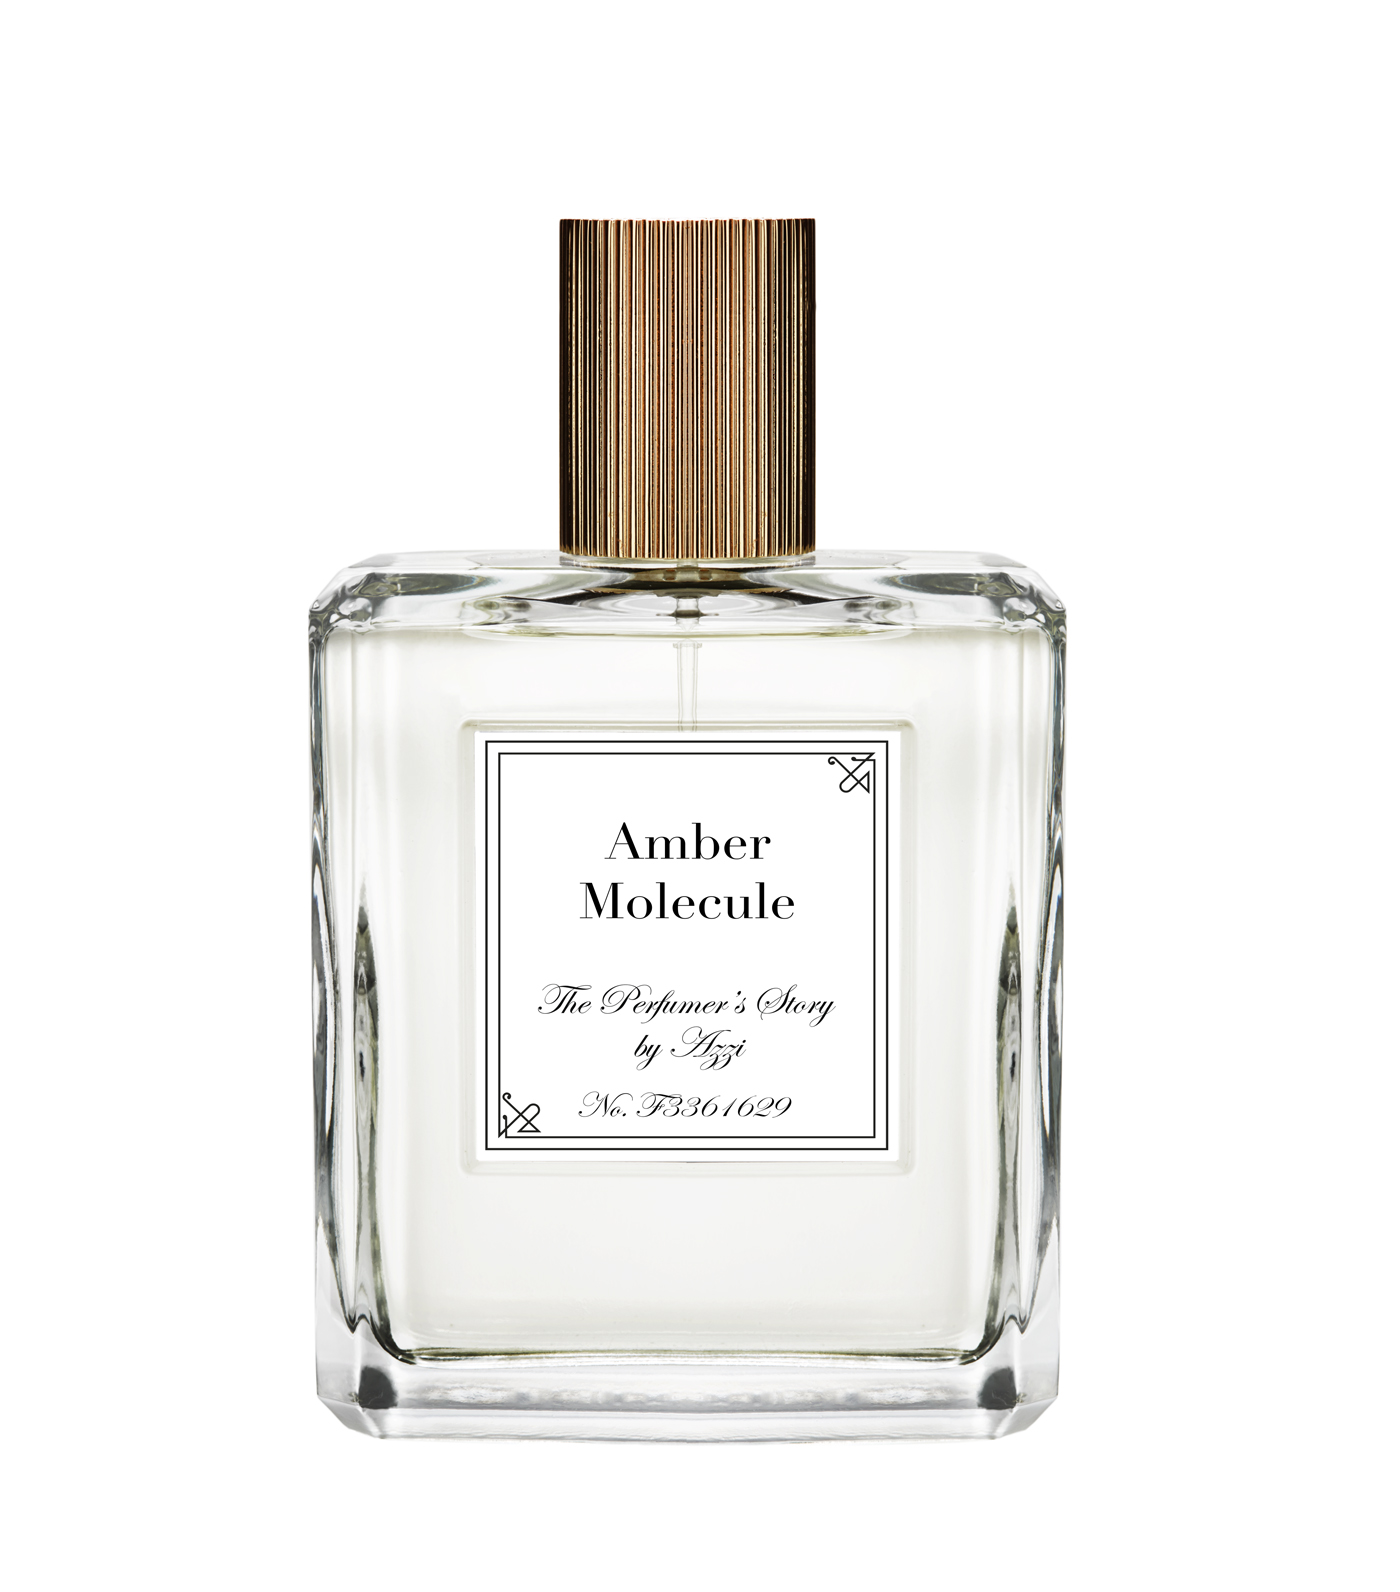 Amber Molecule Eau De Parfum 150ml by The Perfumer's Story by Azzi on curated-crowd.com